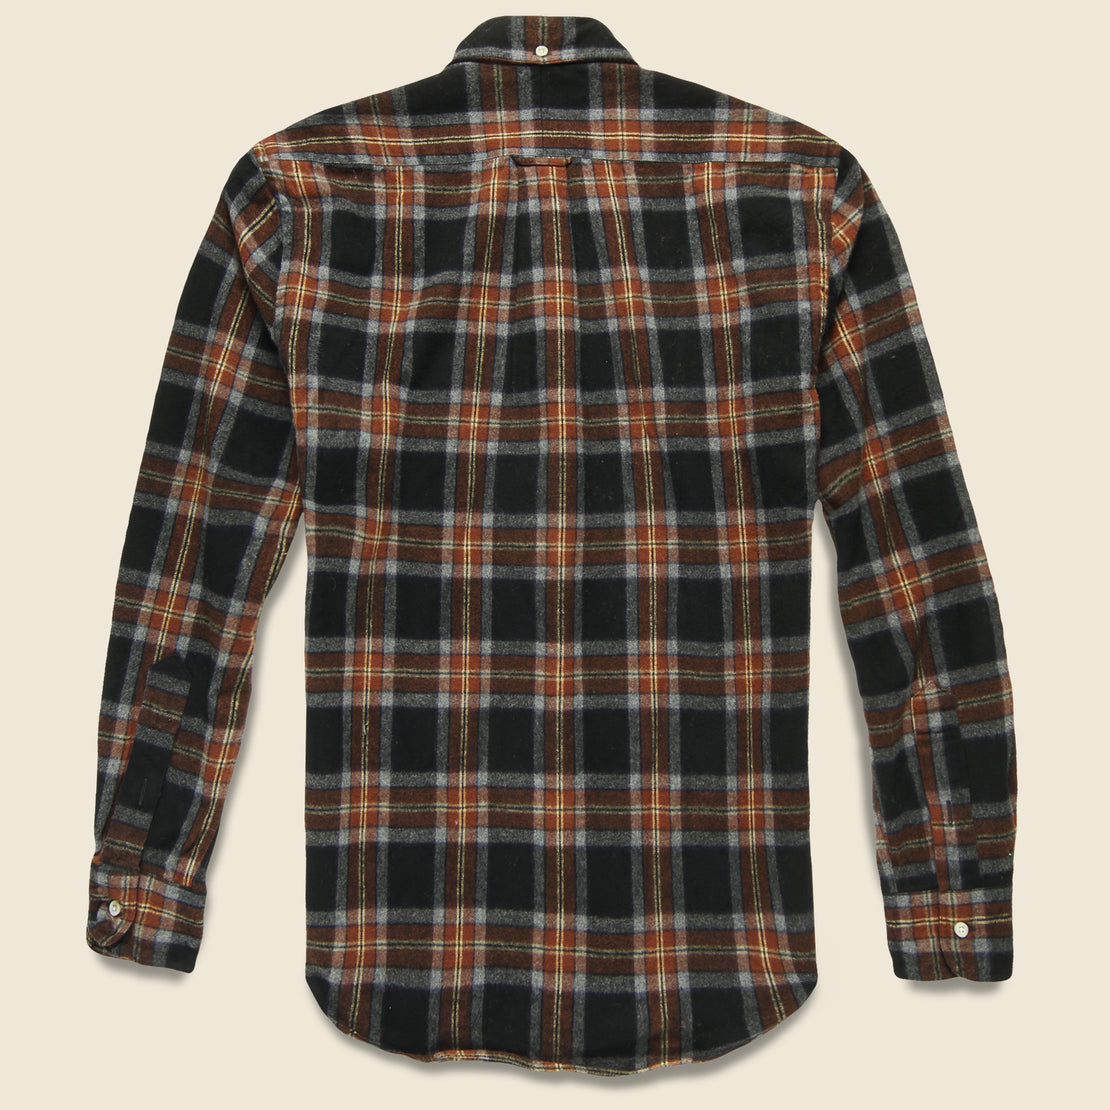 Shaggy Brushed Flannel Oxford Shirt - Rust/Black